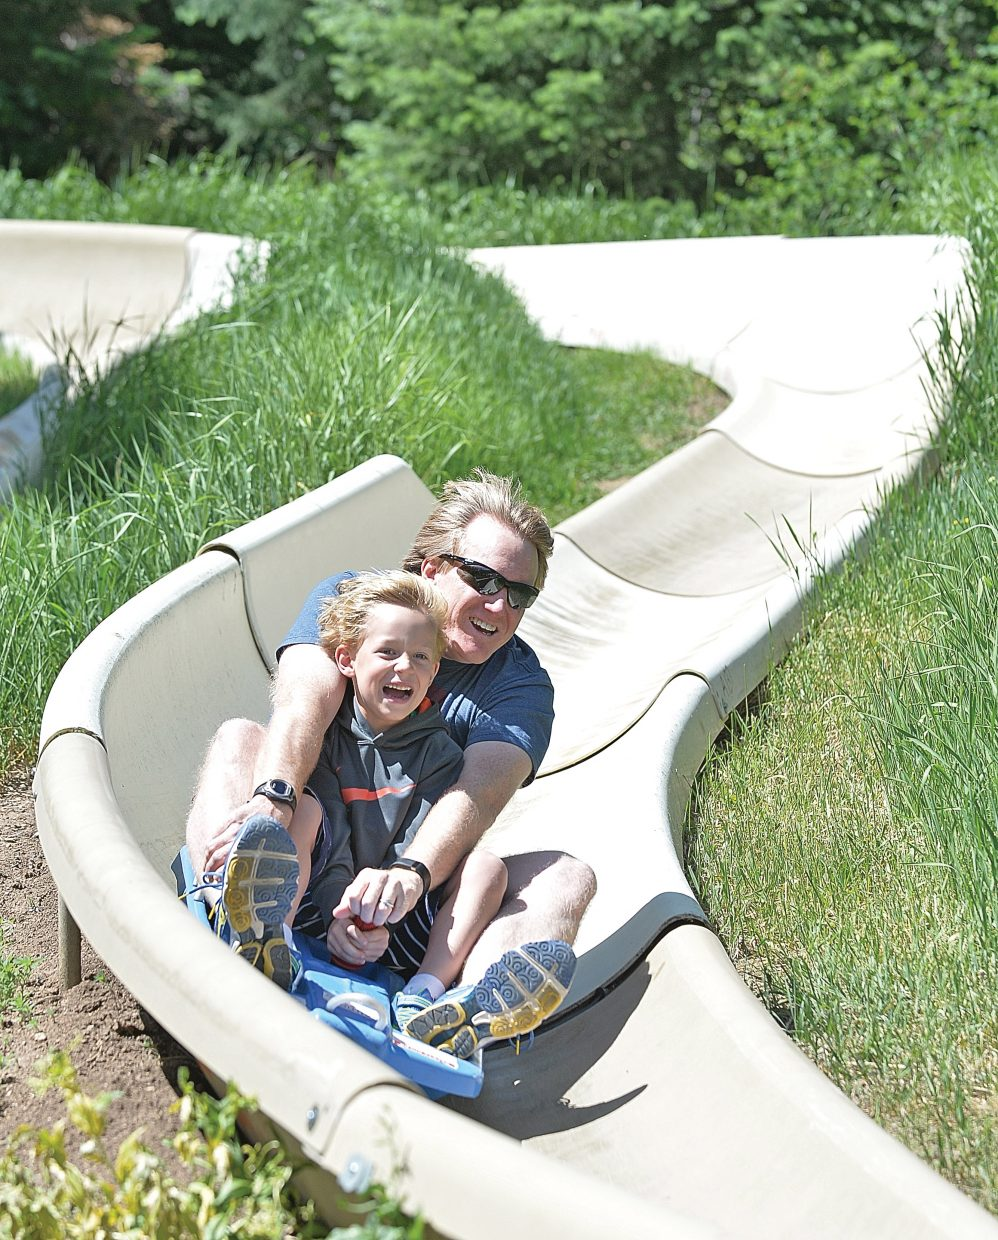 Houston residents Mark Murray, back, and Carson Murray speed down the Alpine Slide while visiting Steamboat Springs on vacation.